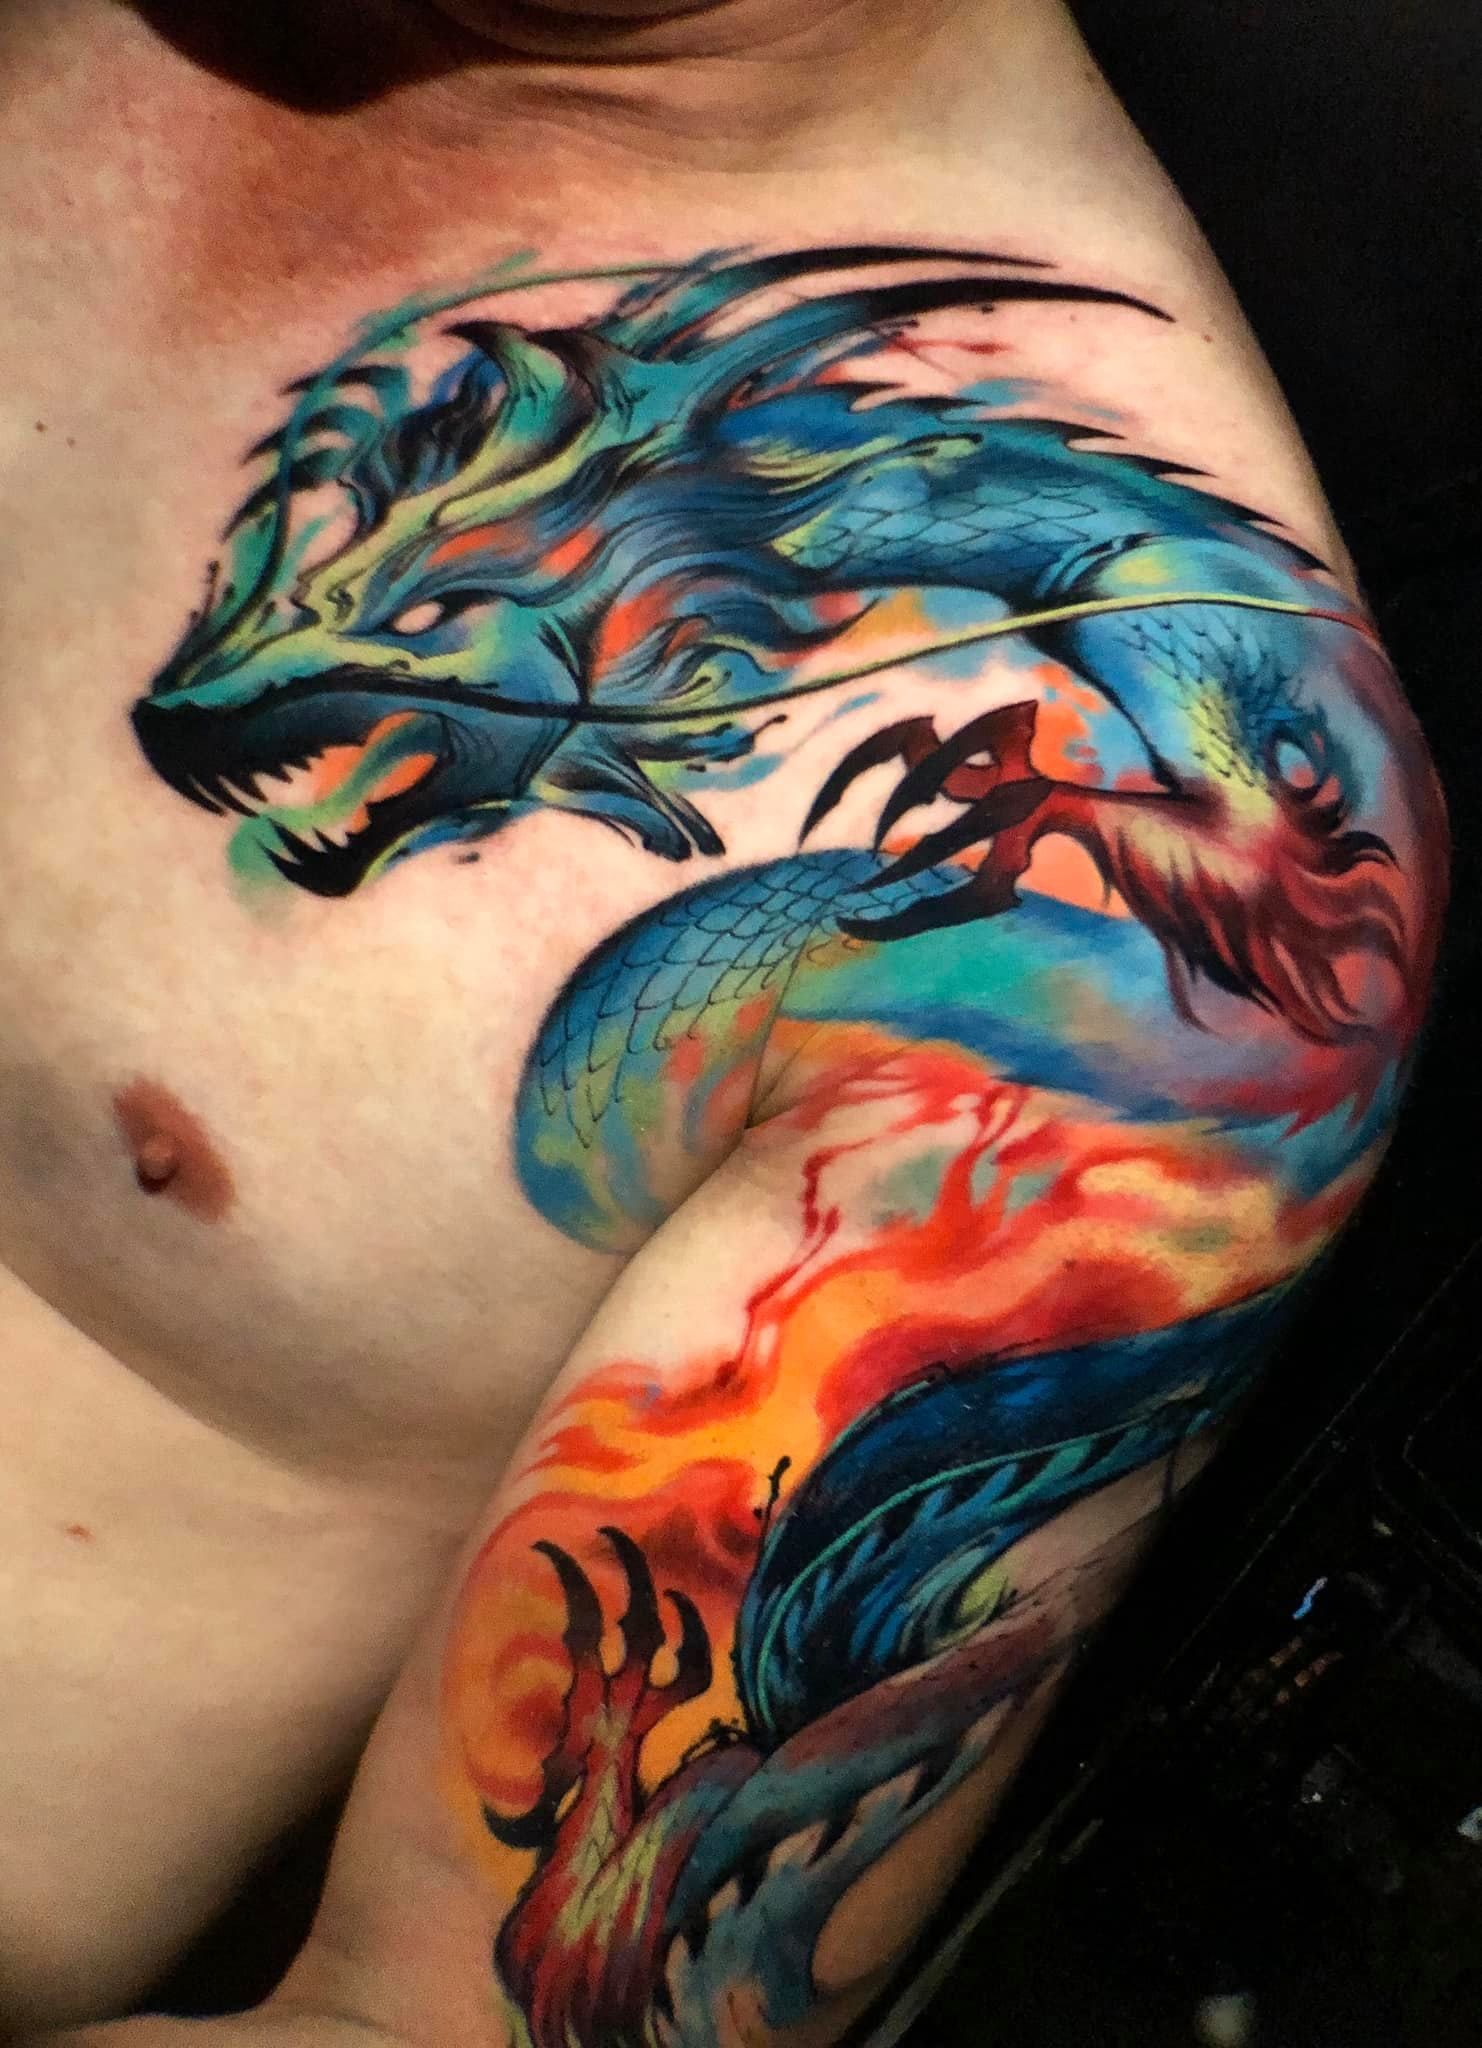 100 Best Chest Tattoos For Men 2019 The Wolf Tattoo Is One Of The Most Popular Tattoos For Men Who Want Ani In 2020 Tattoo Designs Wolf Pack Tattoo Cool Chest Tattoos